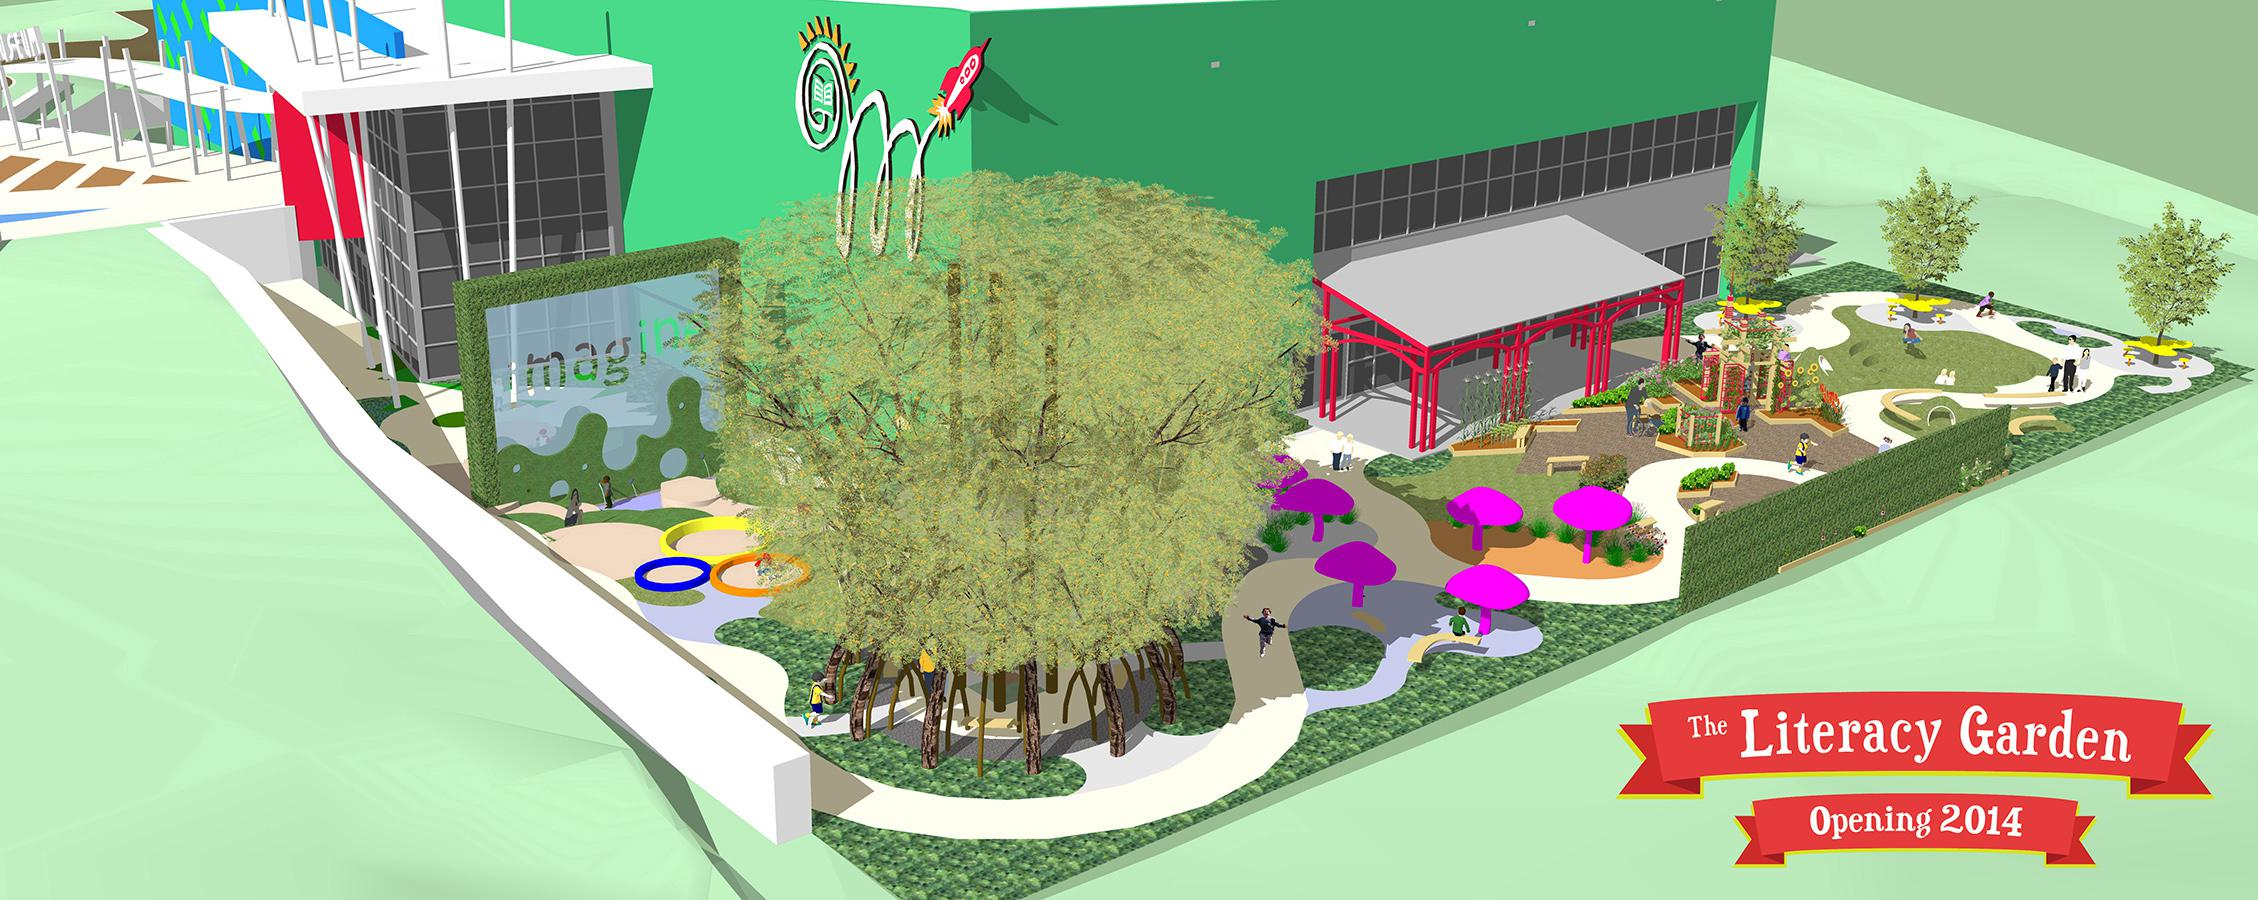 A high-tech, multi-sensory play space designed to encourage reading is scheduled to open in 2014 at the Mississippi Children's Museum in Jackson. The literacy garden will include native plants and reflect the various habitats found in Mississippi. (Photo courtesy of Mississippi Children's Museum)